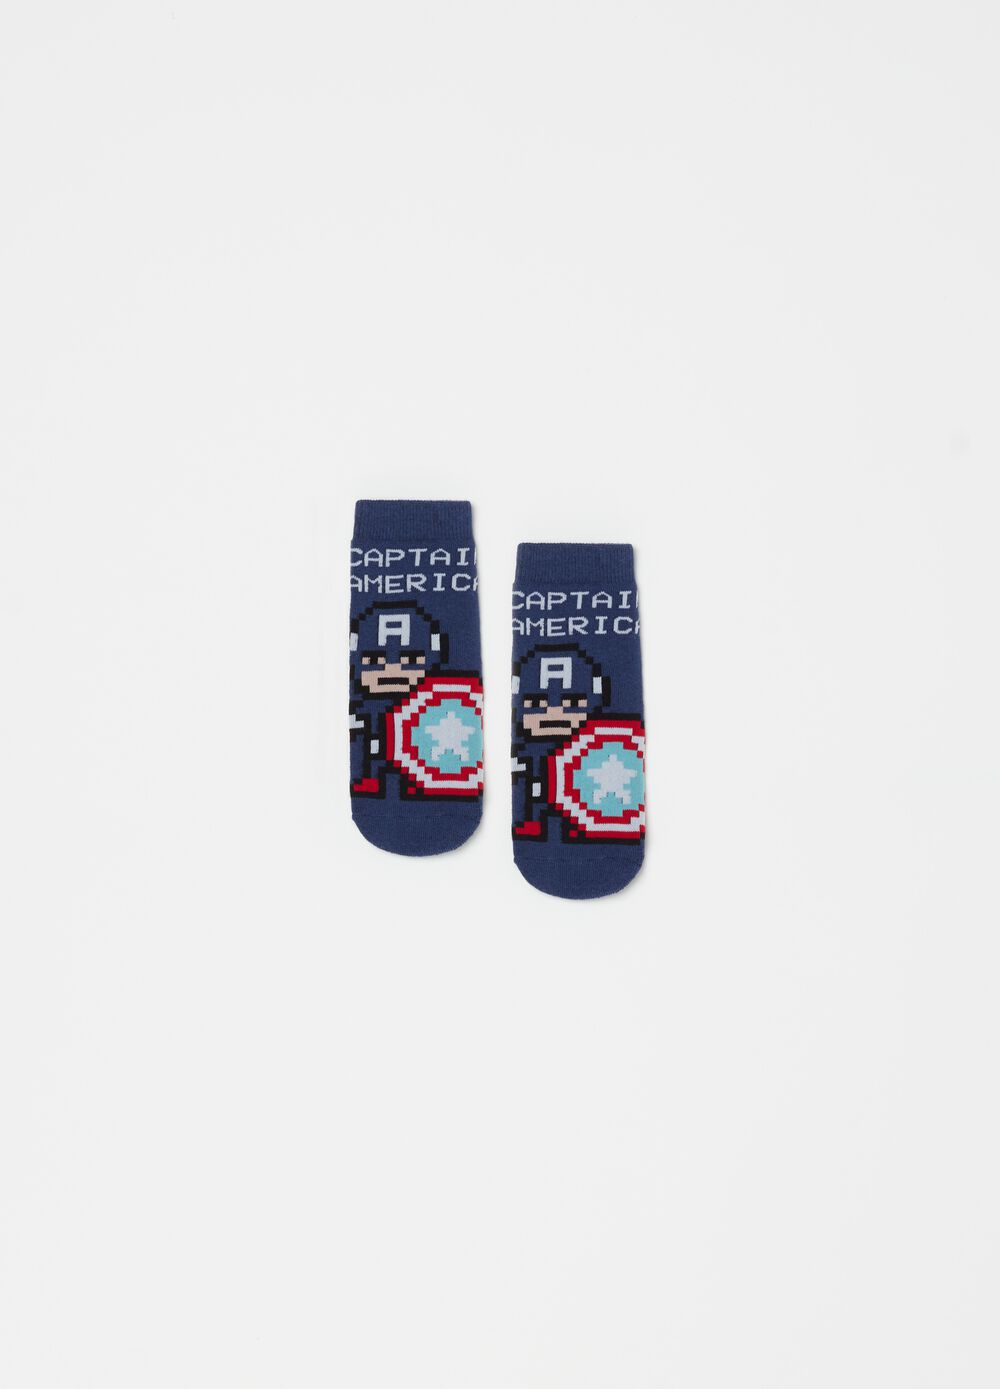 Captain America slipper socks